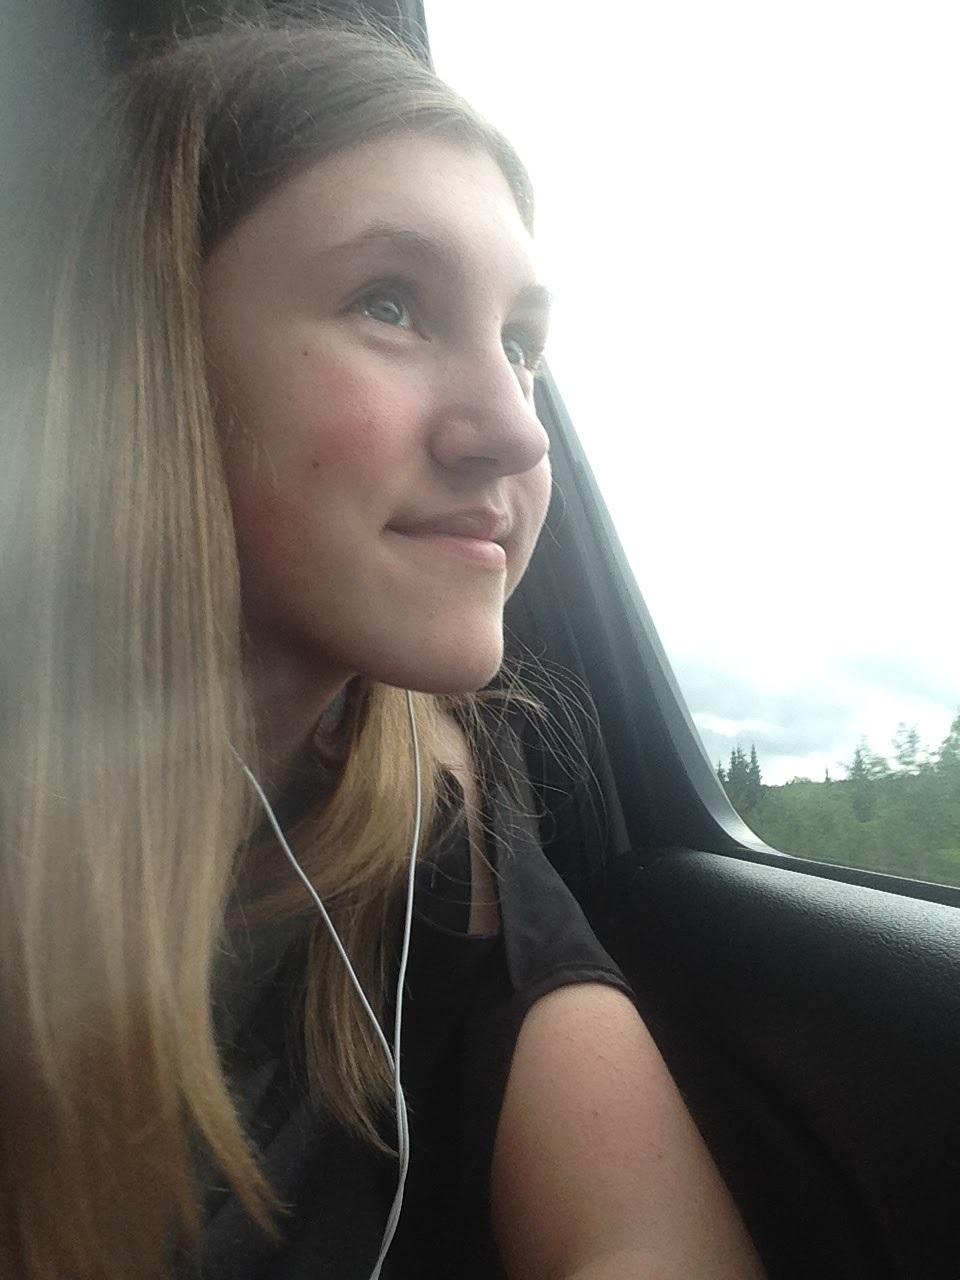 Ashlee-Looking-Out-Window-Canada-Trees.jpg